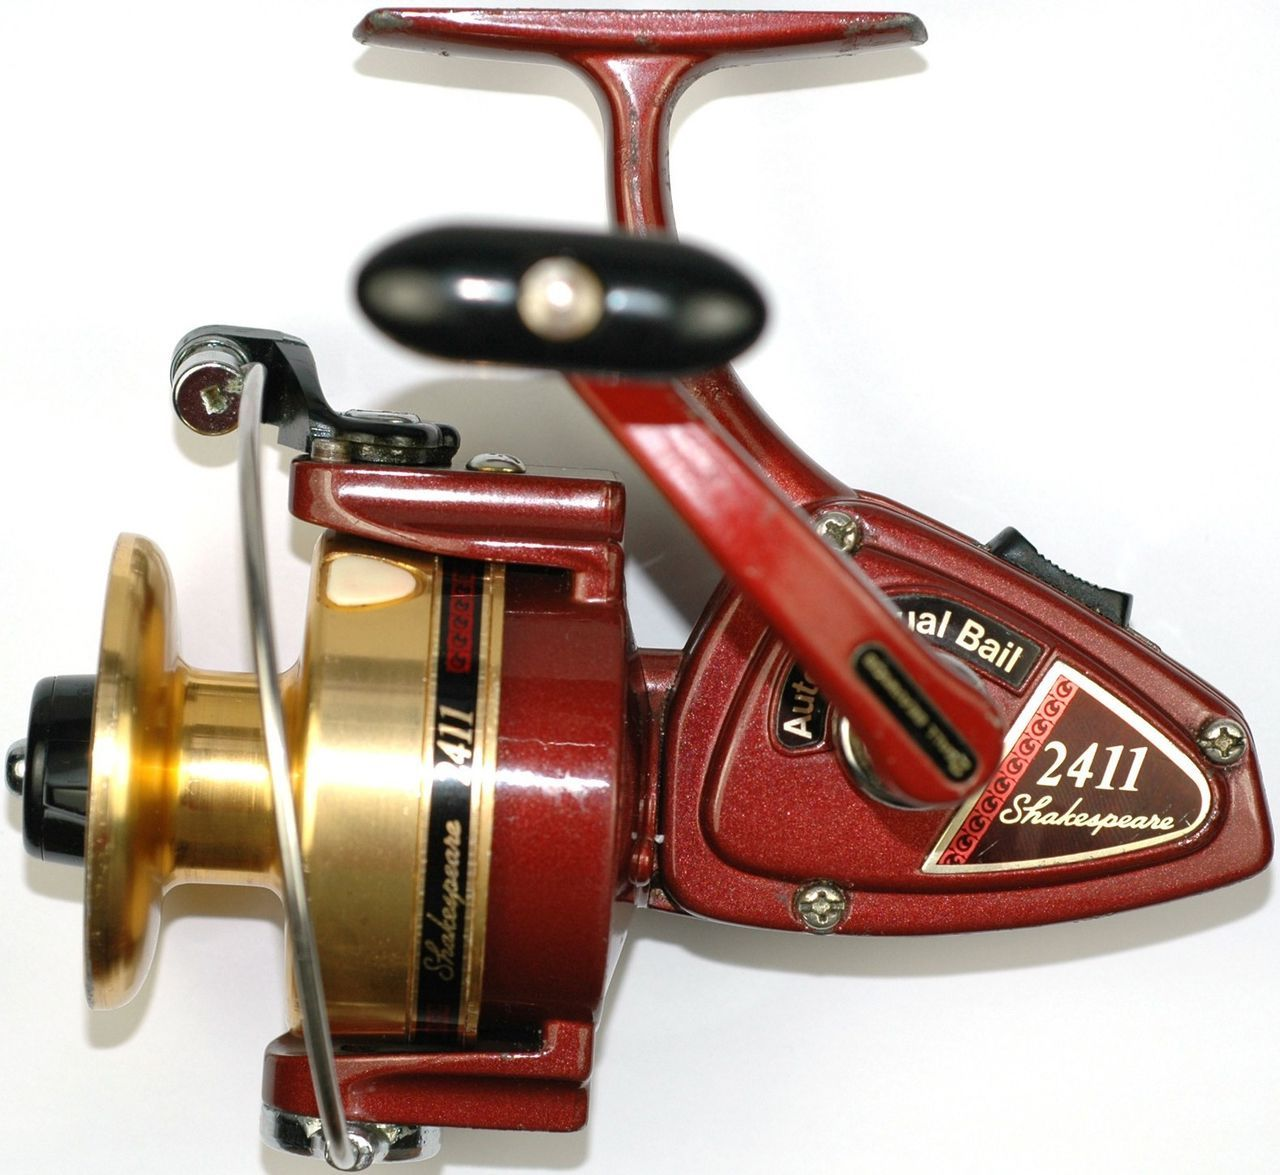 speyco vintage style 3 3/4″ switch spey reel fly fishing rod, Reel Combo